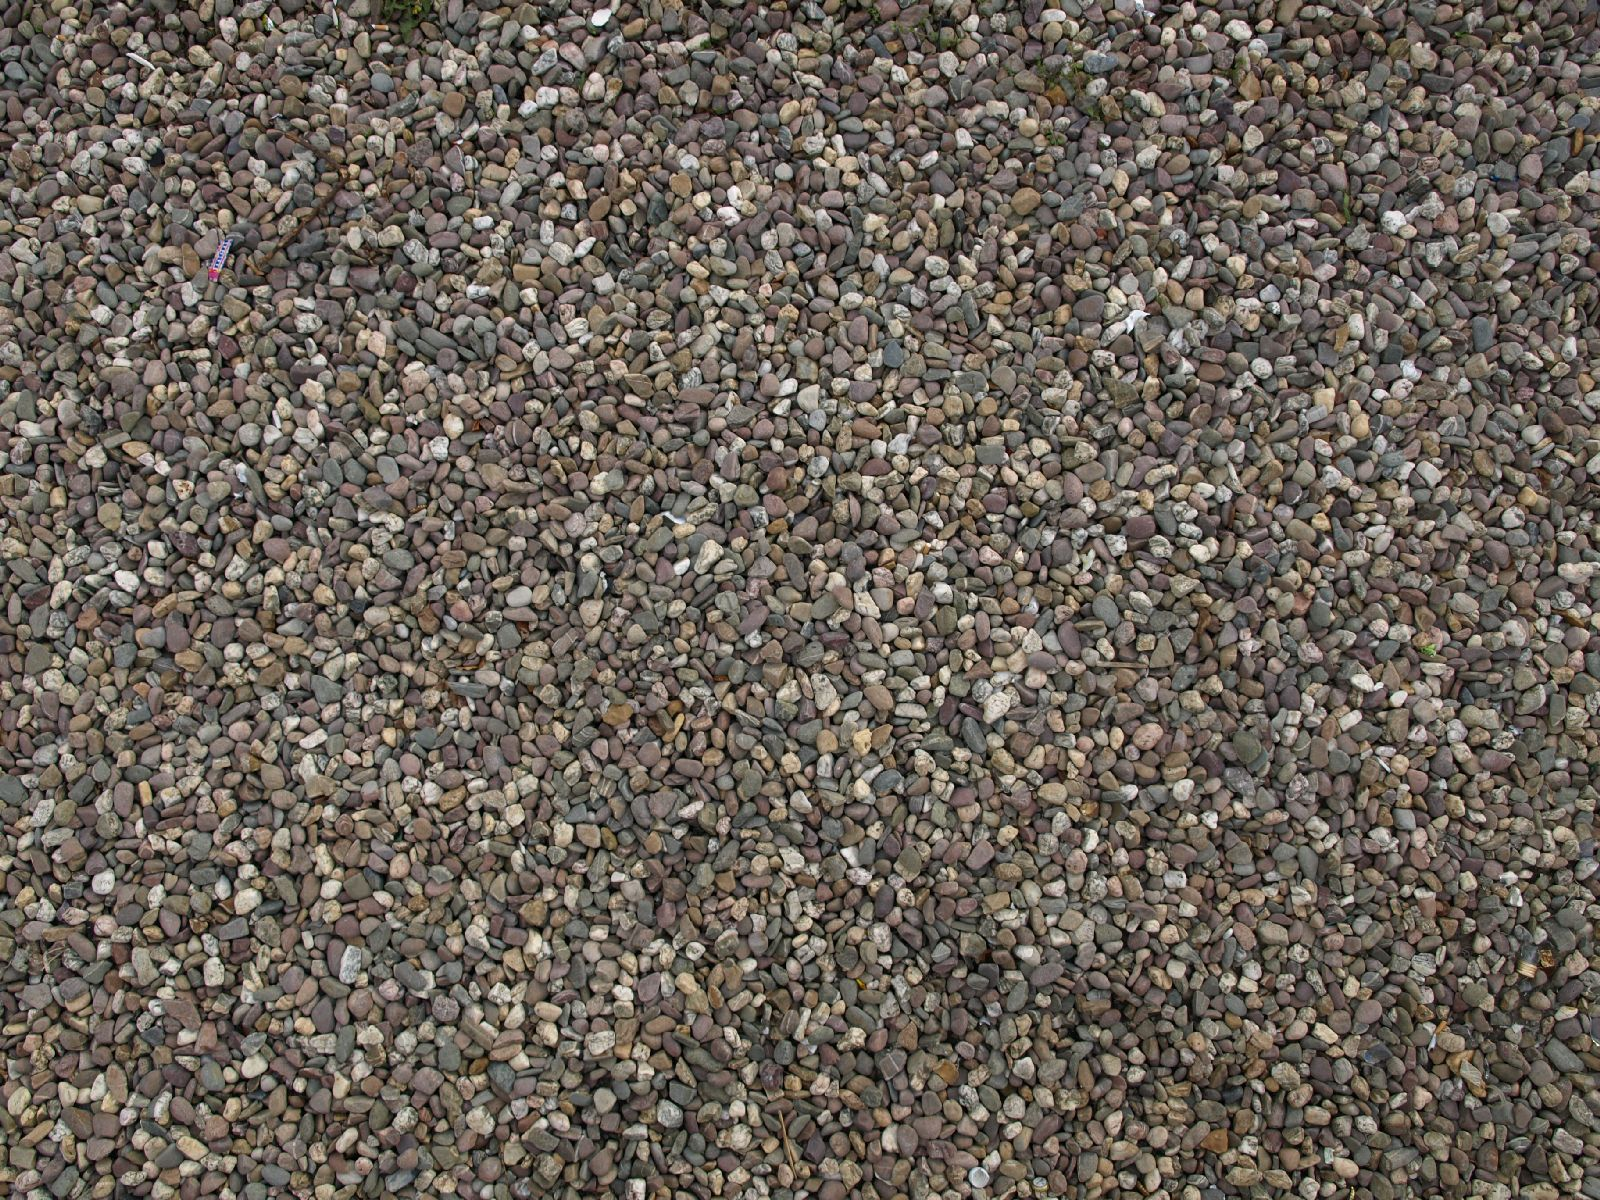 Ground-Nature_Texture_A_P4120902